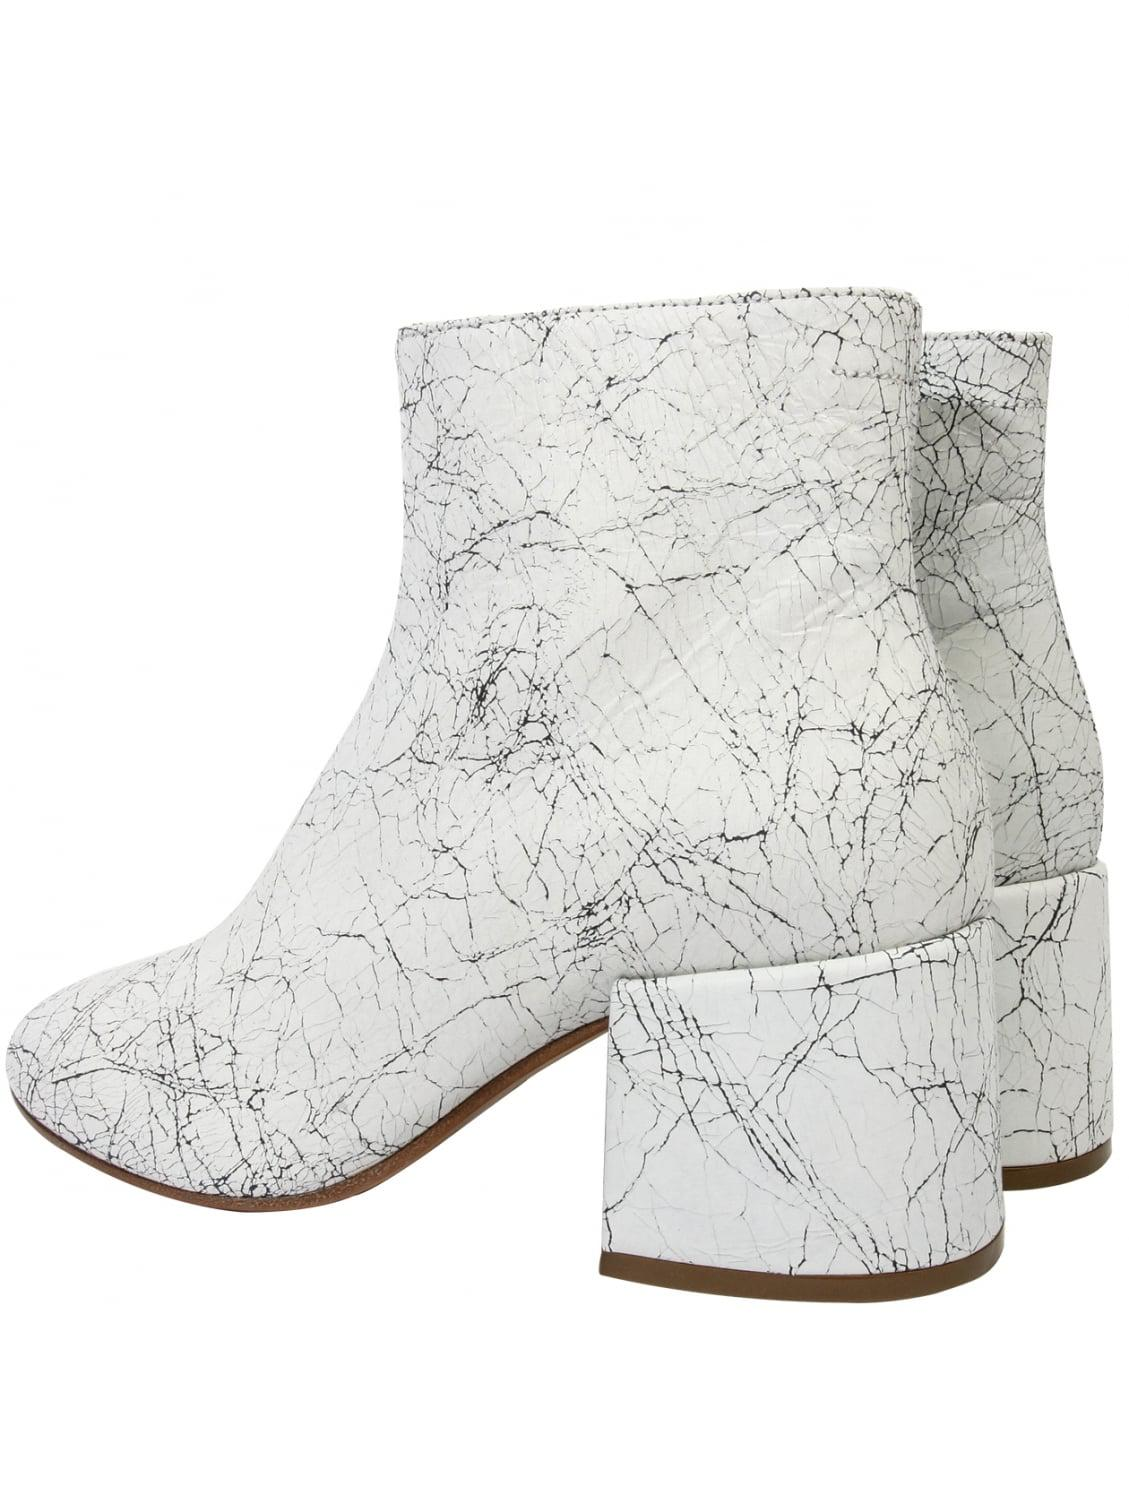 MM6 by Maison Martin Margiela Leather Crackle Block Heel Ankle Boot White